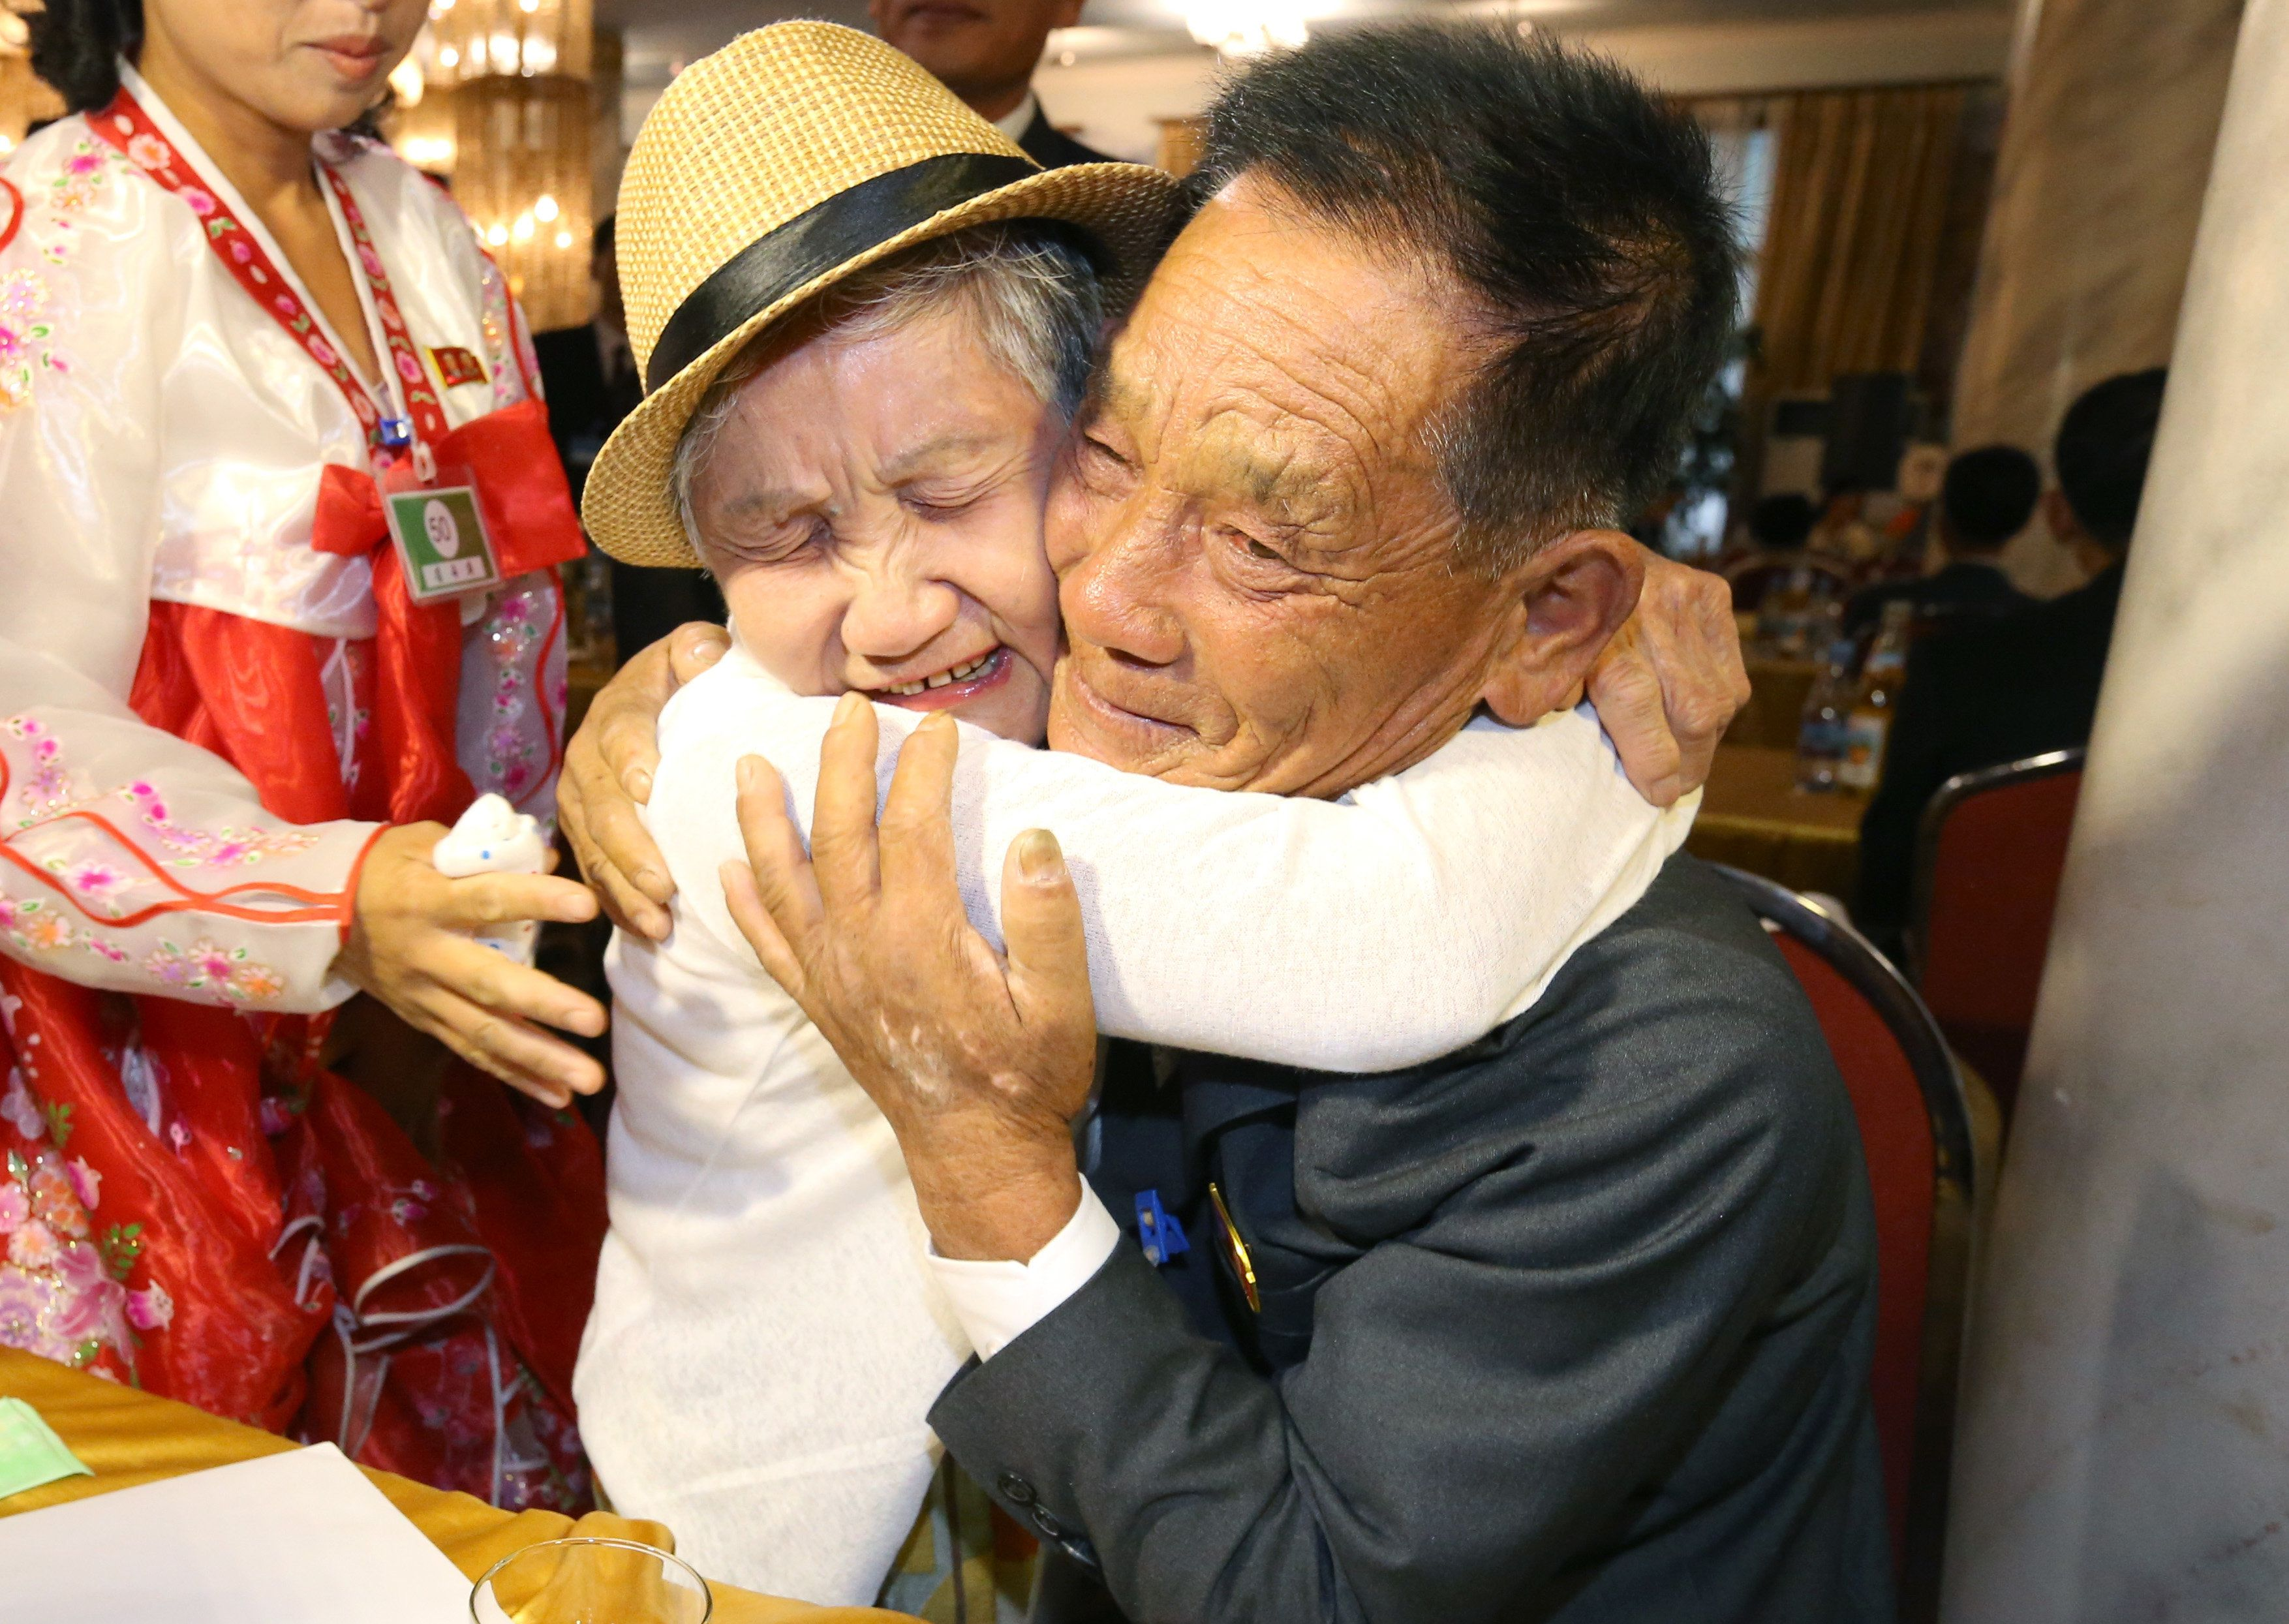 TOPSHOT - South Korean Lee Keum-seom (L), 92, meets with her North Korean son Ri Sung Chol (R), 71, during a separated family reunion meeting at the Mount Kumgang resort on the North's southeastern coast on August 20, 2018. - Dozens of elderly and frail South Koreans met their Northern relatives on August 20 for the first time since the peninsula and their families were divided by war nearly seven decades ago. (Photo by KOREA POOL / KOREA POOL / AFP) / South Korea OUT / REPUBLIC OF KOREA OUT        (Photo credit should read KOREA POOL/AFP/Getty Images)